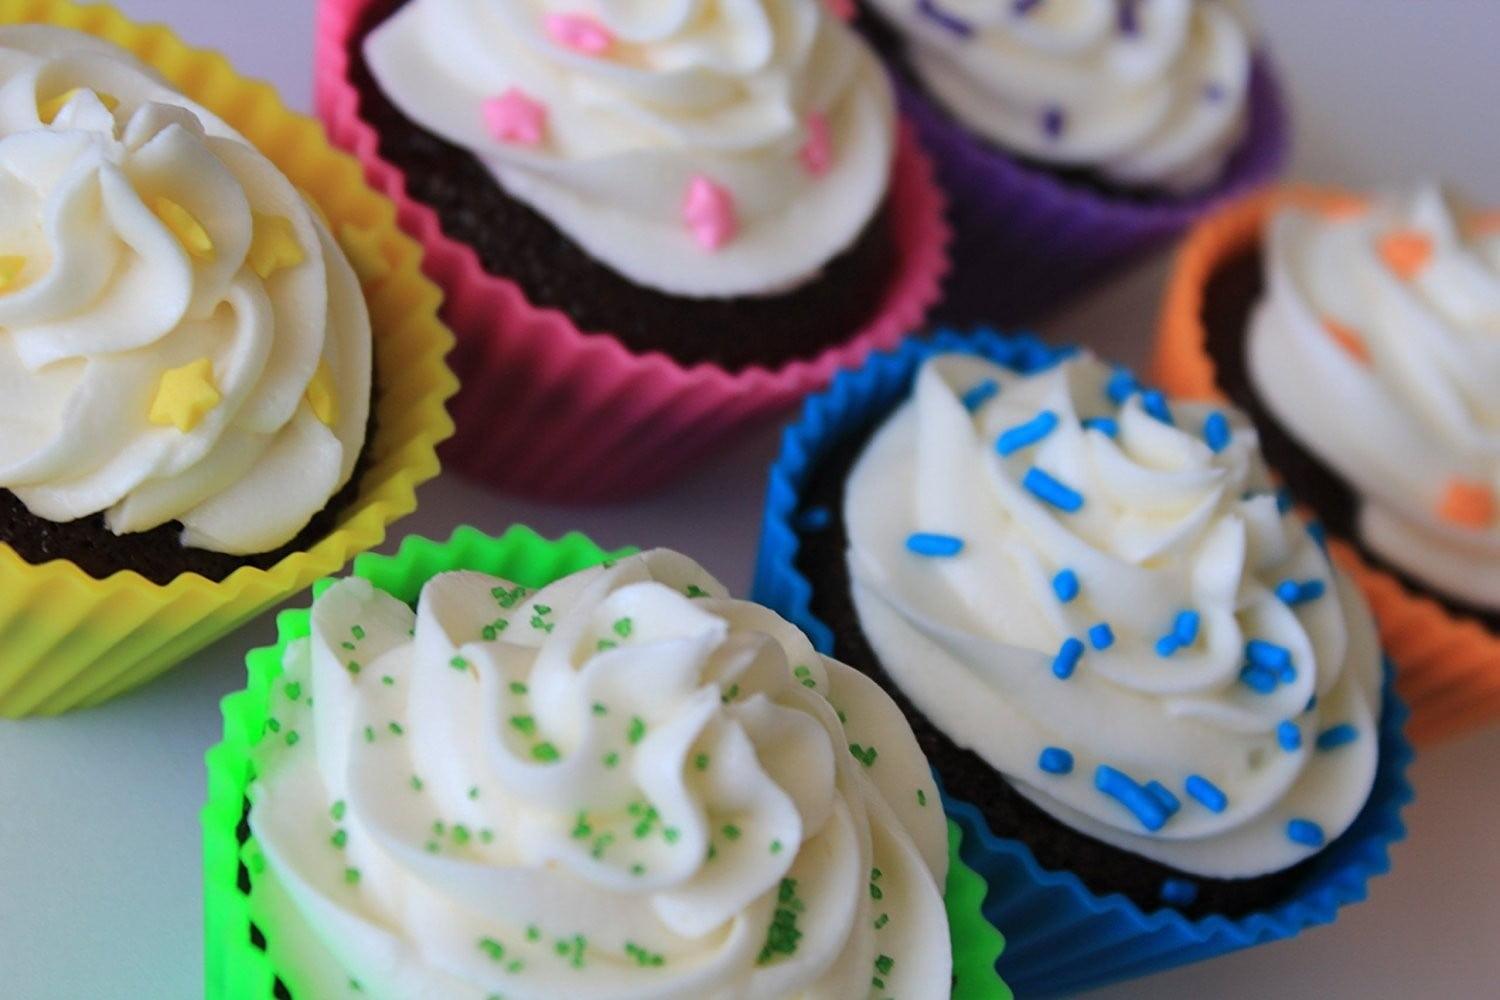 pantry-items-silicone-cupcake-liners-baking-molds-with cupcakes in them